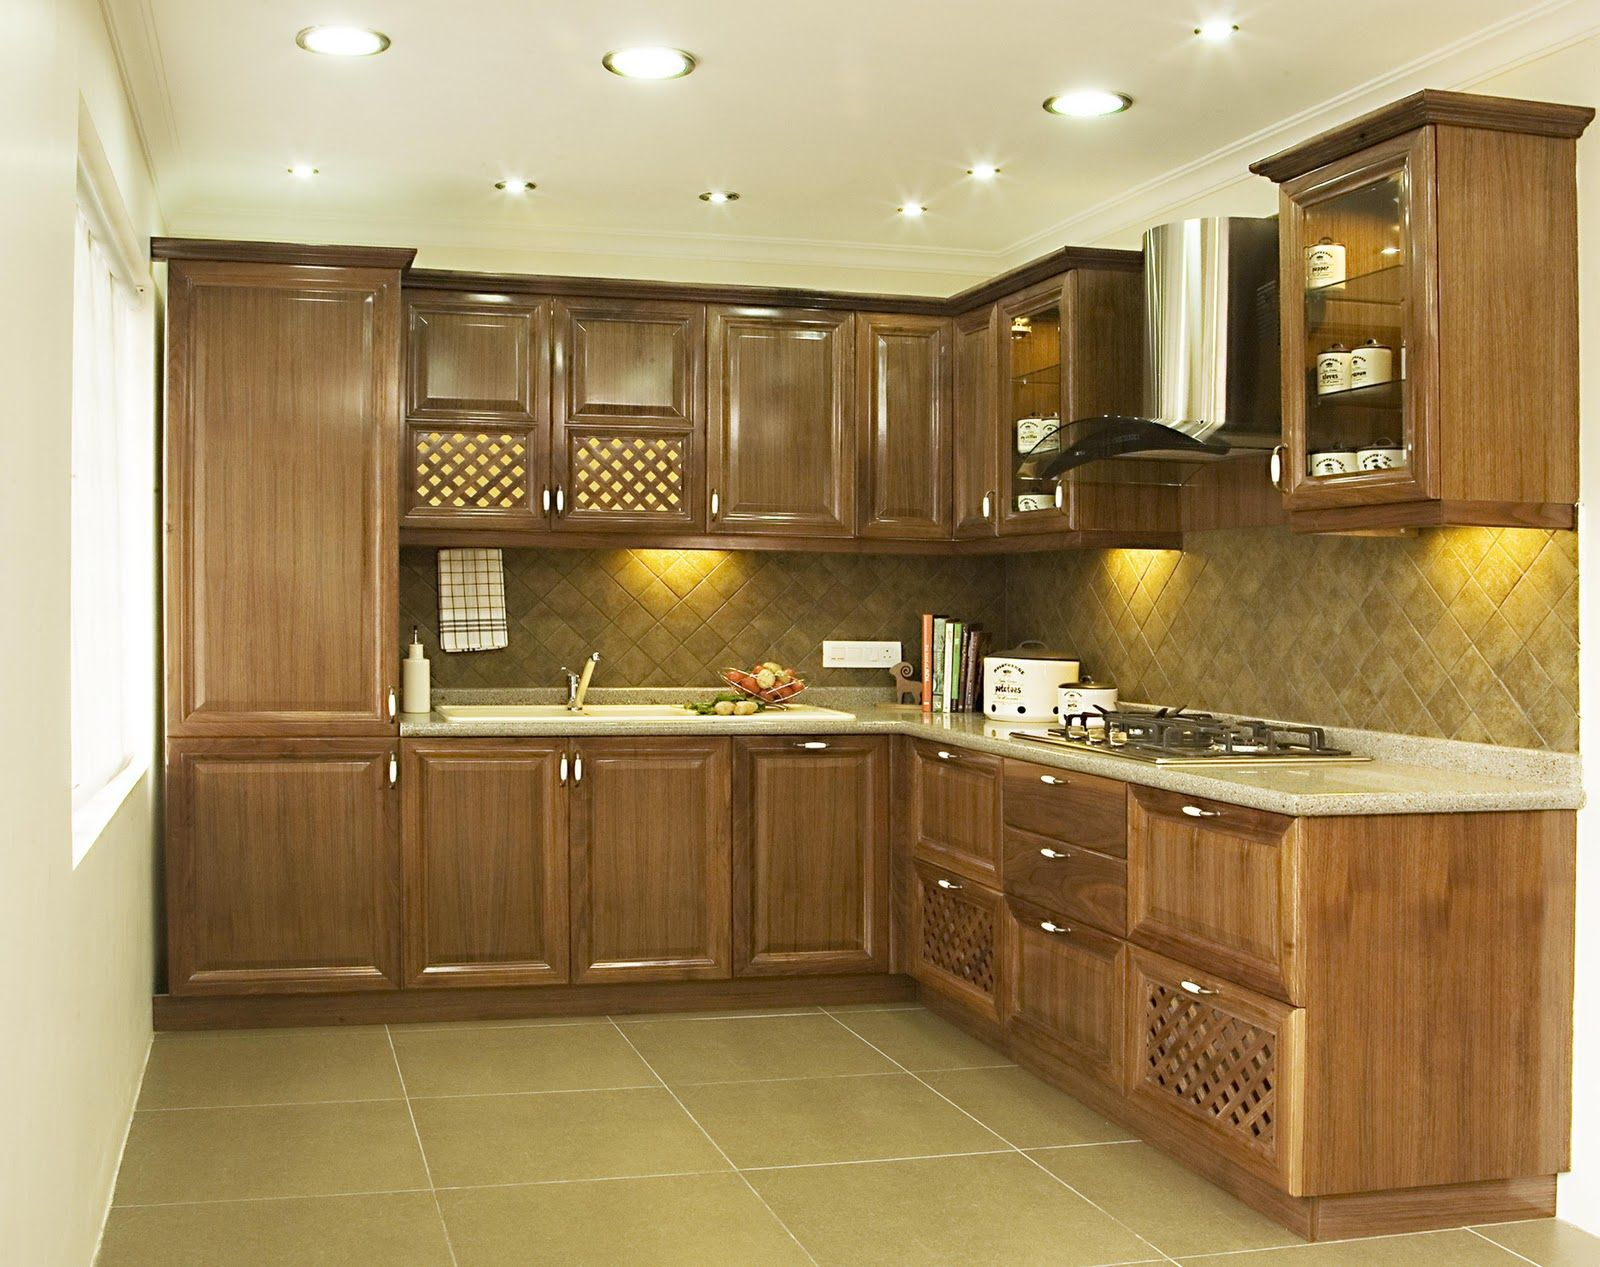 3d Kitchen Design Software Download Free - http://sapuru.com/3d ...